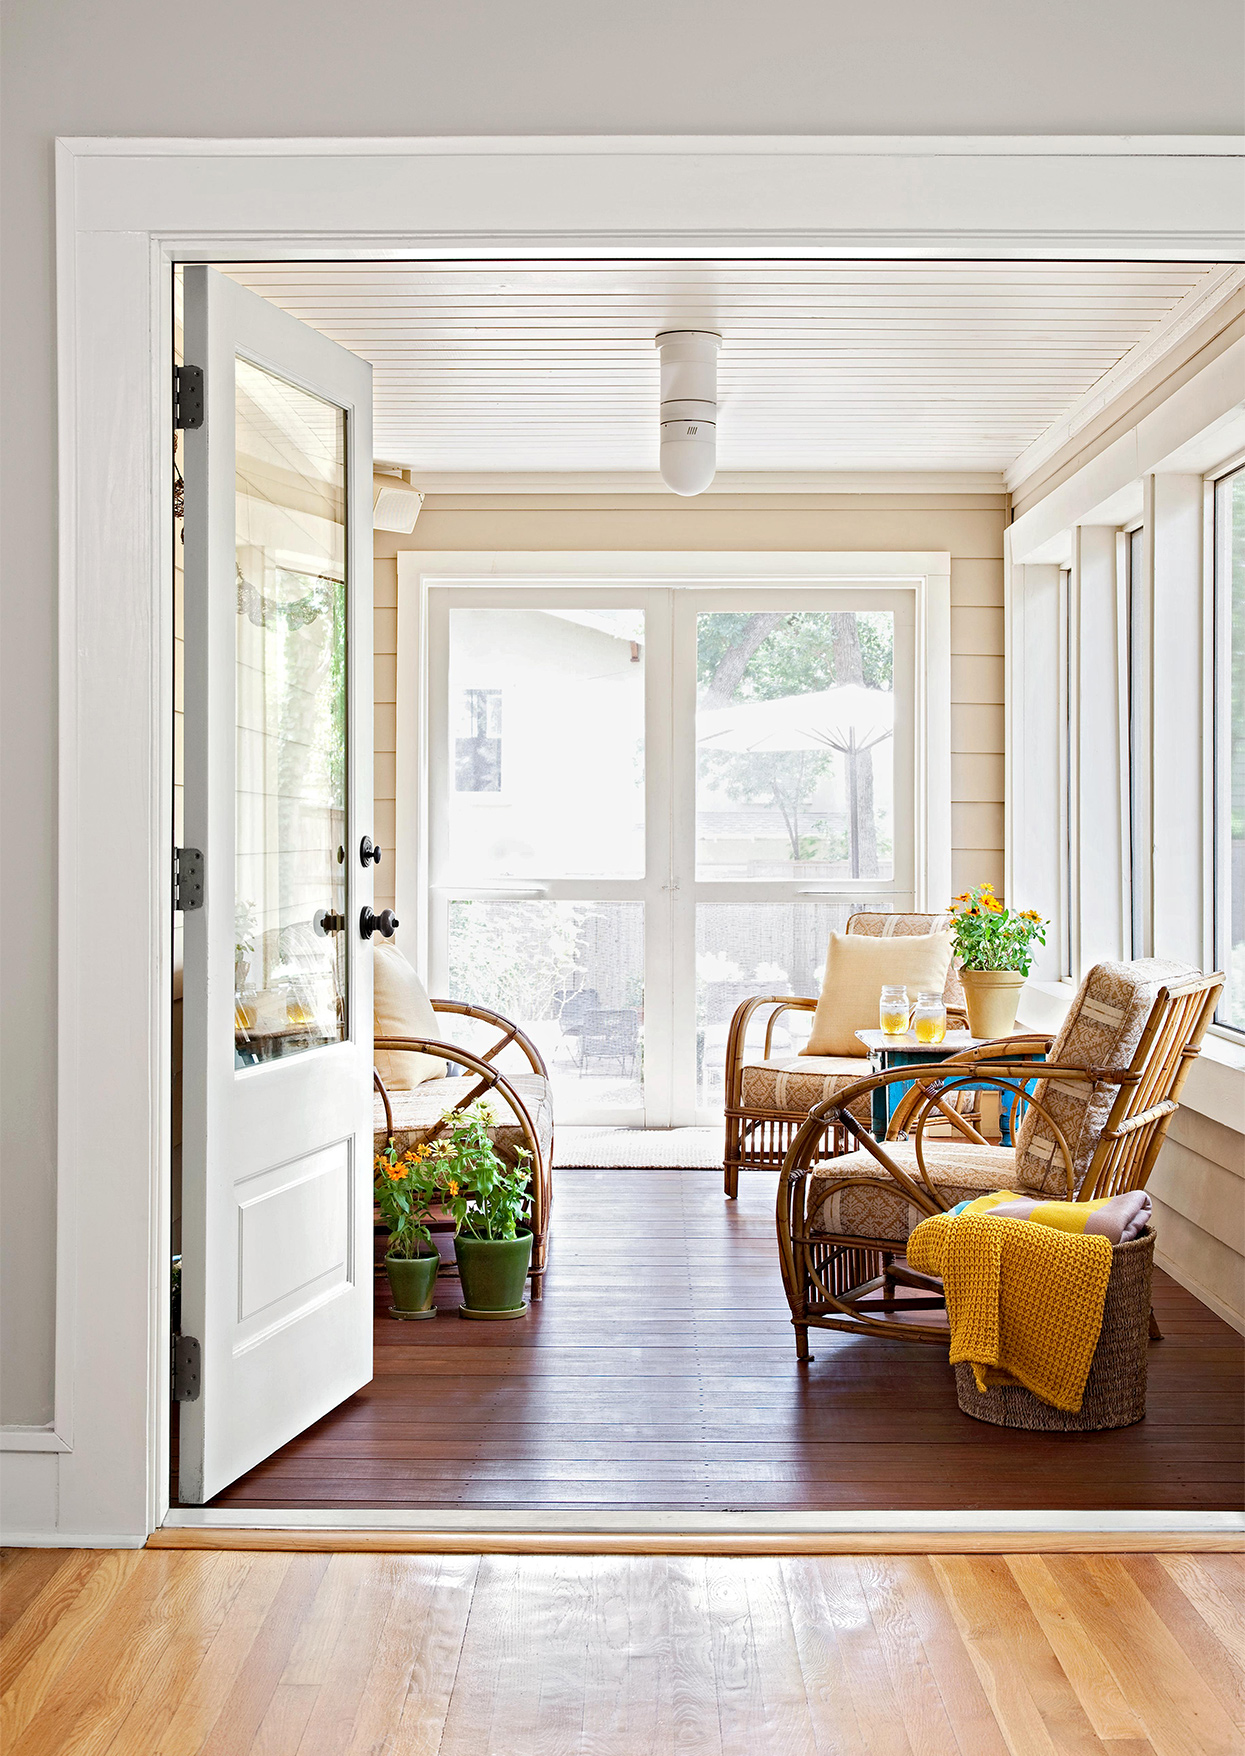 added-on front porch with wicker chairs